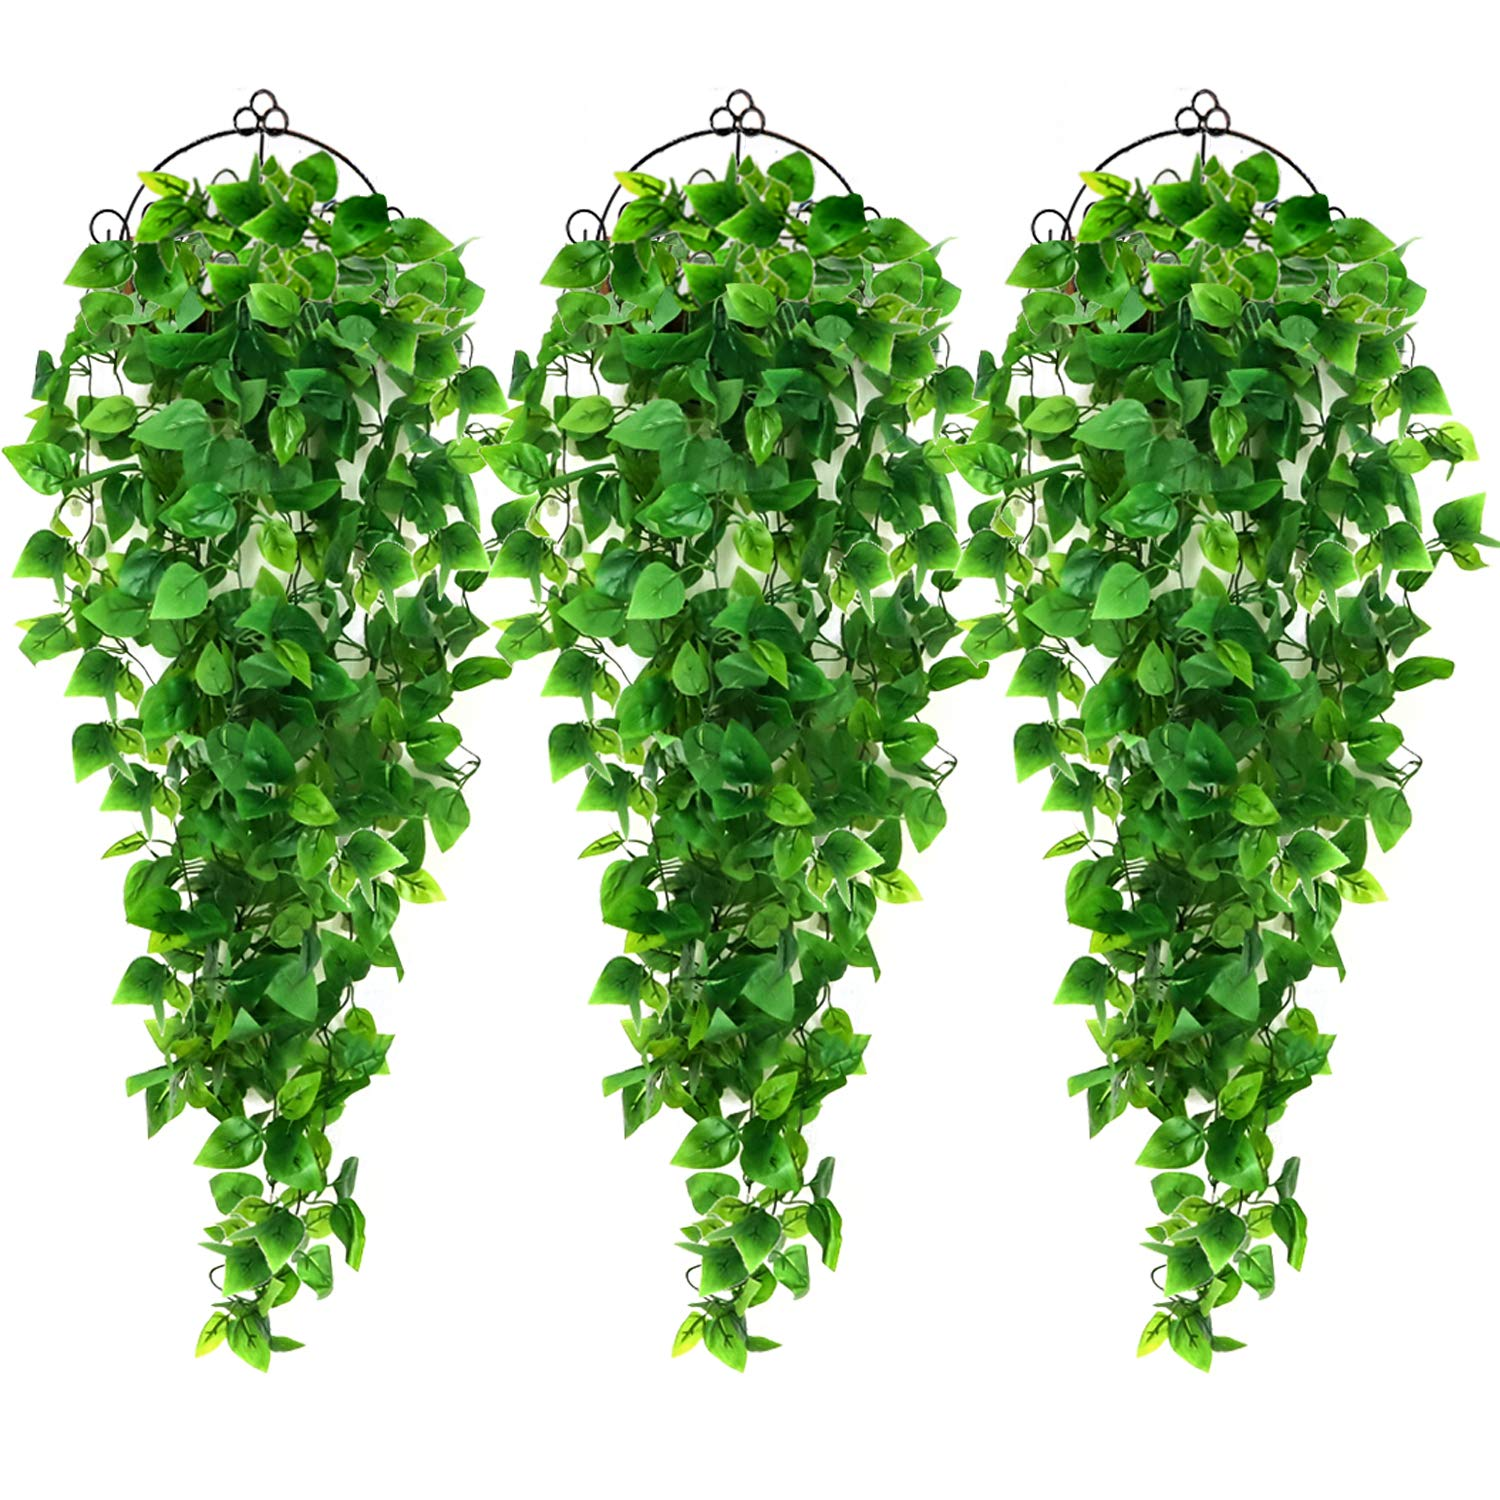 AGEOMET 3pcs Artificial Hanging Plants 3.6ft Fake Ivy Vine, Fake Hanging Plants Vine Plants Kitchen Plants for Wall House Room Indoor Outdoor Decoration (No Baskets)